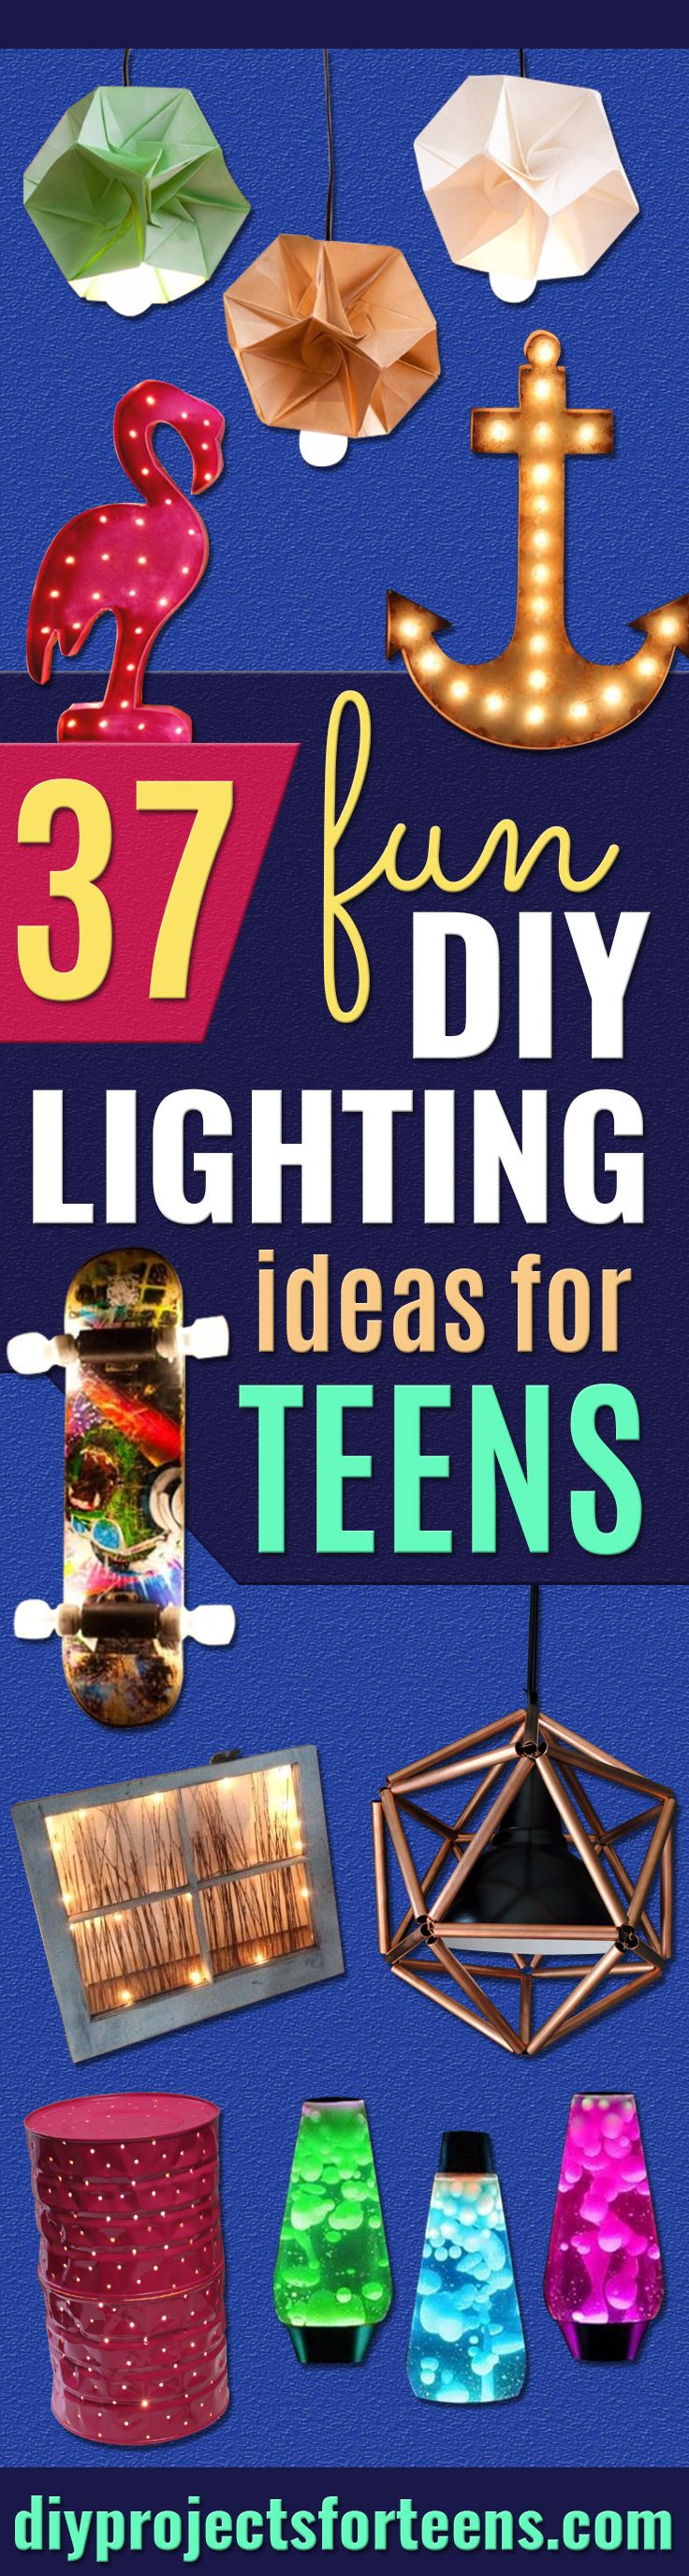 DIY Lighting Ideas for Teen and Kids Rooms - Fun DIY Lights like Lamps, Pendants, Chandeliers and Hanging Fixtures for the Bedroom plus cool ideas With String Lights. Perfect for Girls and Boys Rooms, Teenagers and Dorm Room Decor